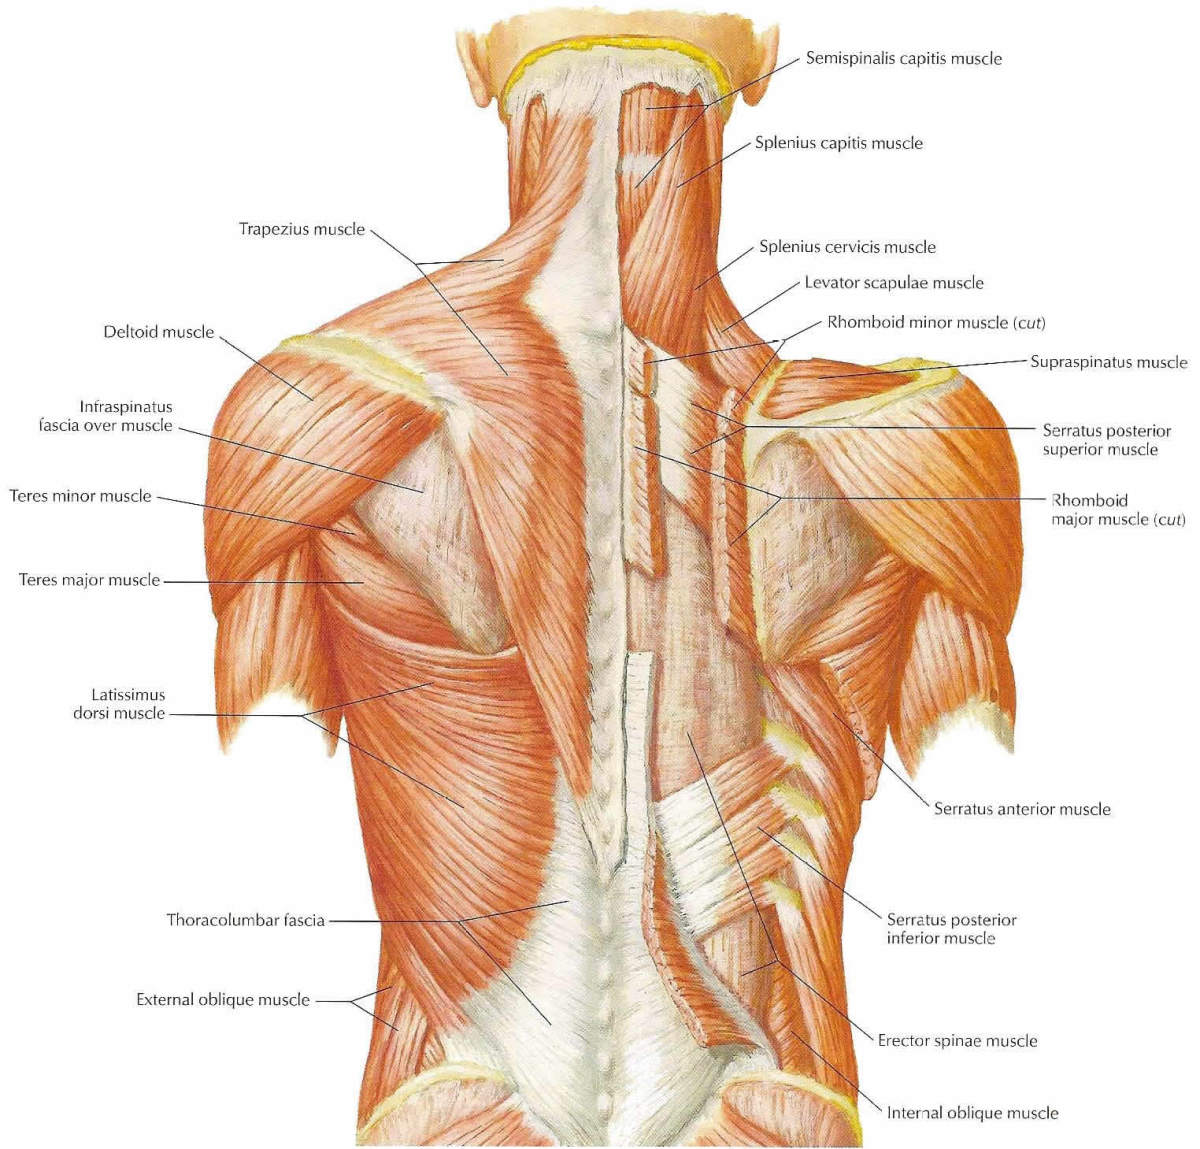 Back Nerves And Muscles Muscles of The Back